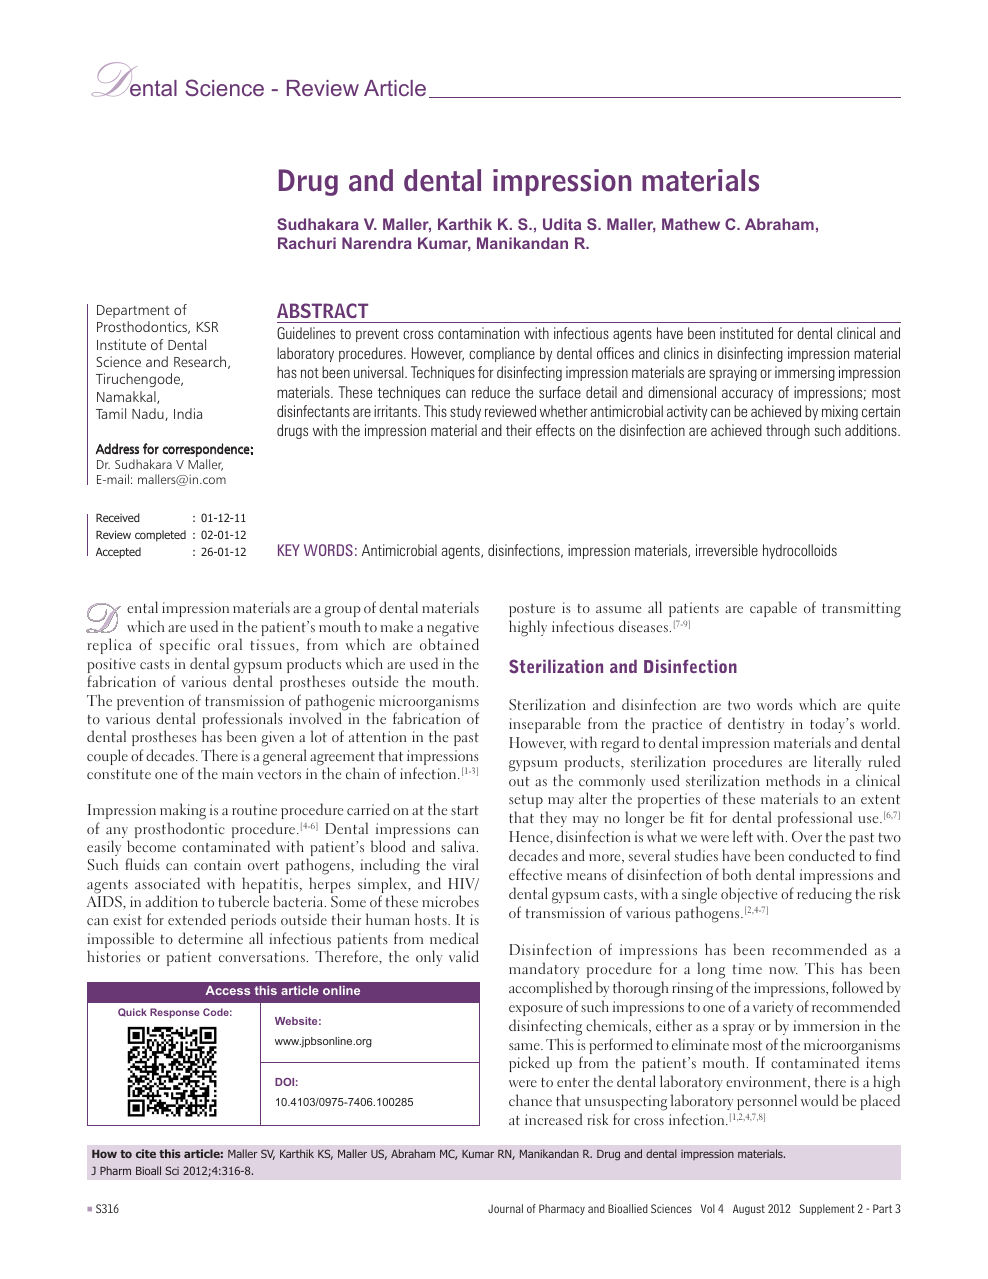 Drug and dental impression materials – topic of research paper in